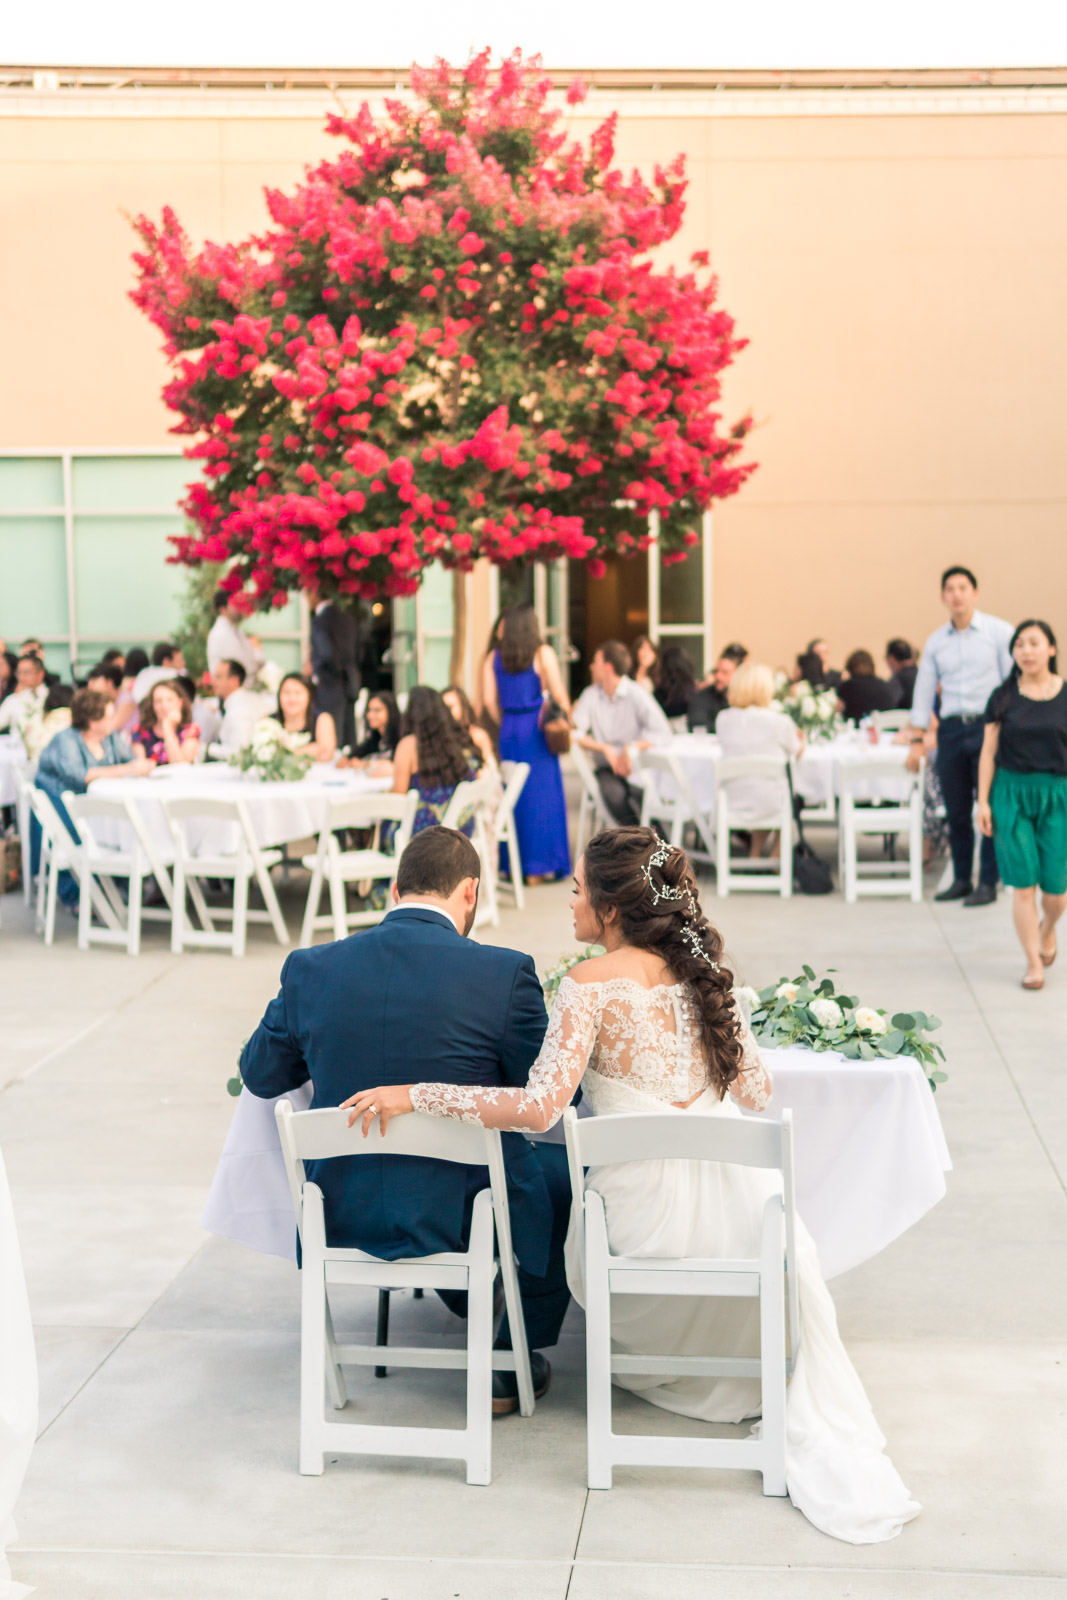 312_Angel-Brea-Orange-County_Joseph-Barber-Wedding-Photography.jpg